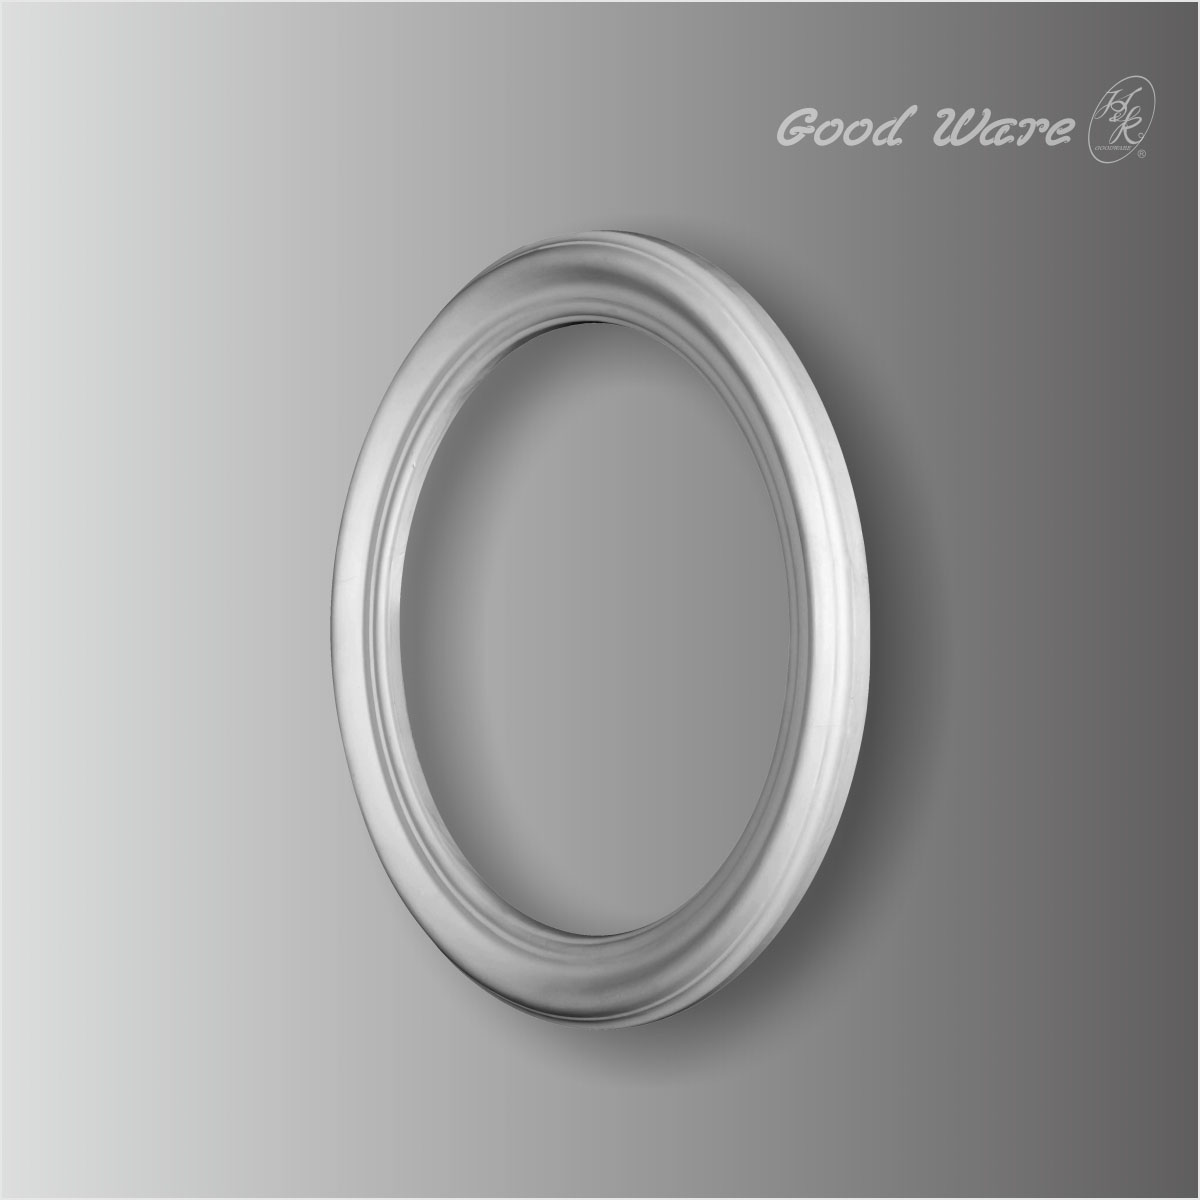 Polyurethane simple ceiling light trim rings